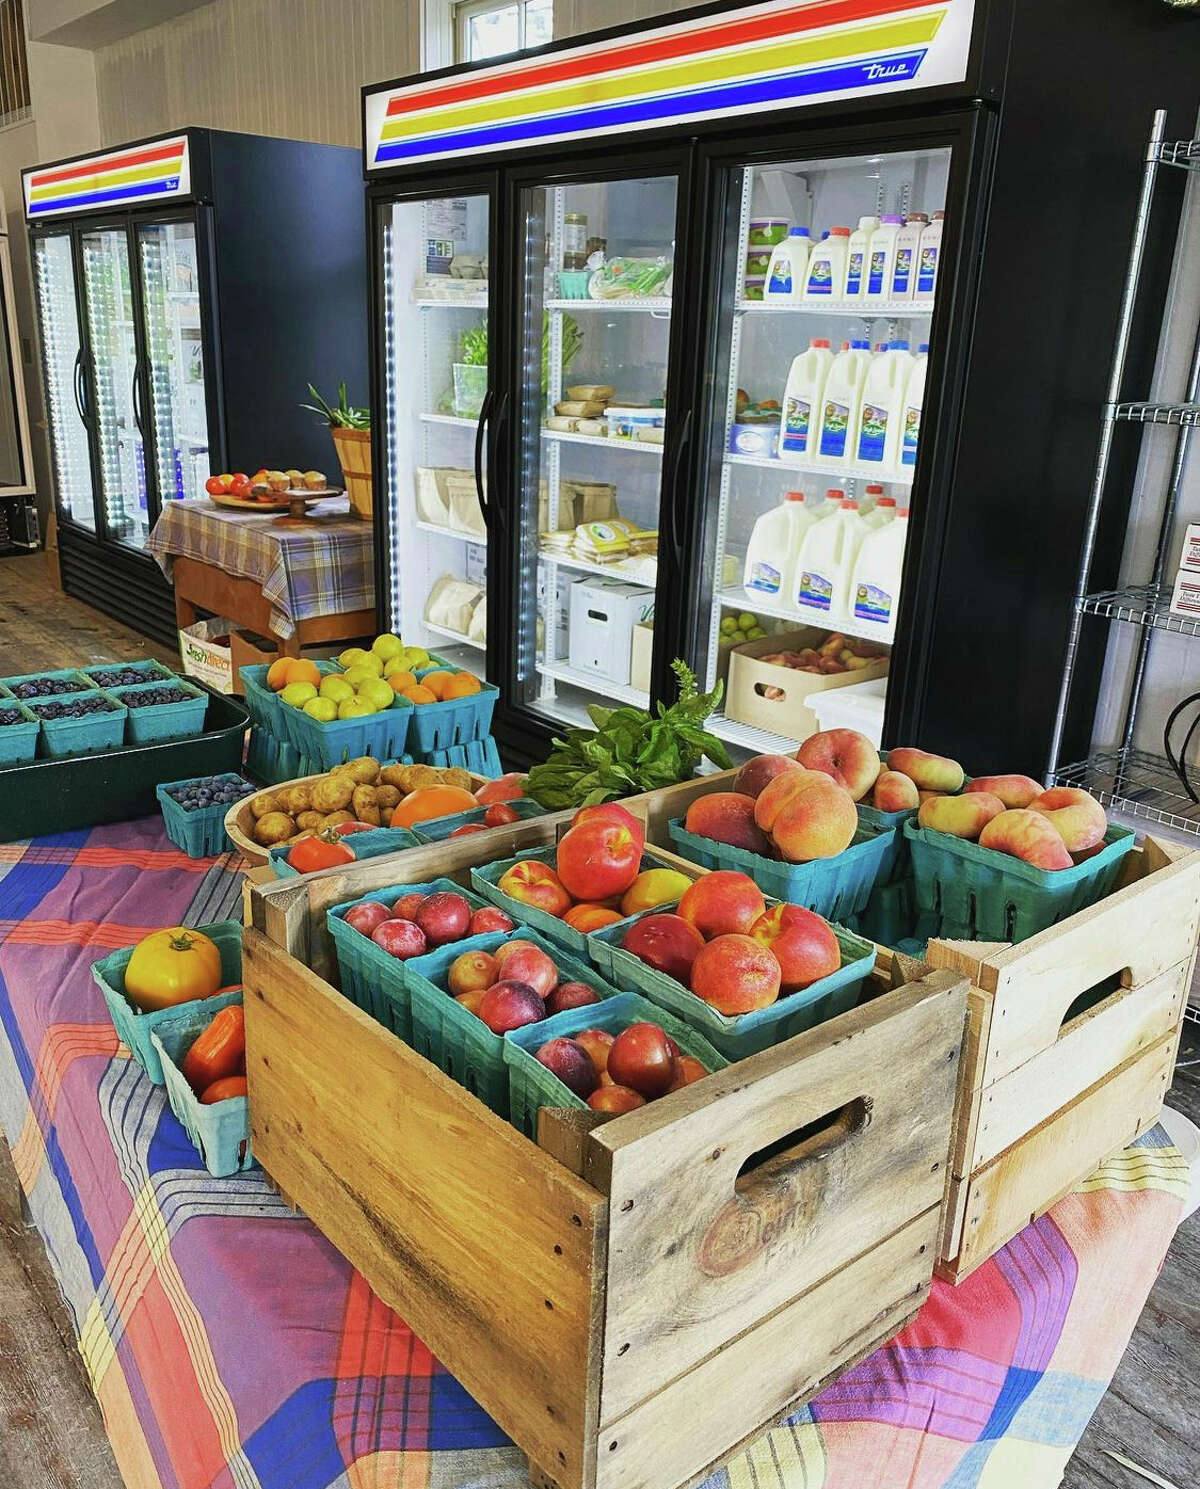 The seasonal New Lebanon Farmers Market, open 10 a.m. to 2 p.m. Sundays in the village through the end of October, recently launched a year-round indoor operation at 528 Route 20 in New Lebanon. It is open noon to 6 p.m. Wednesday to Saturday.